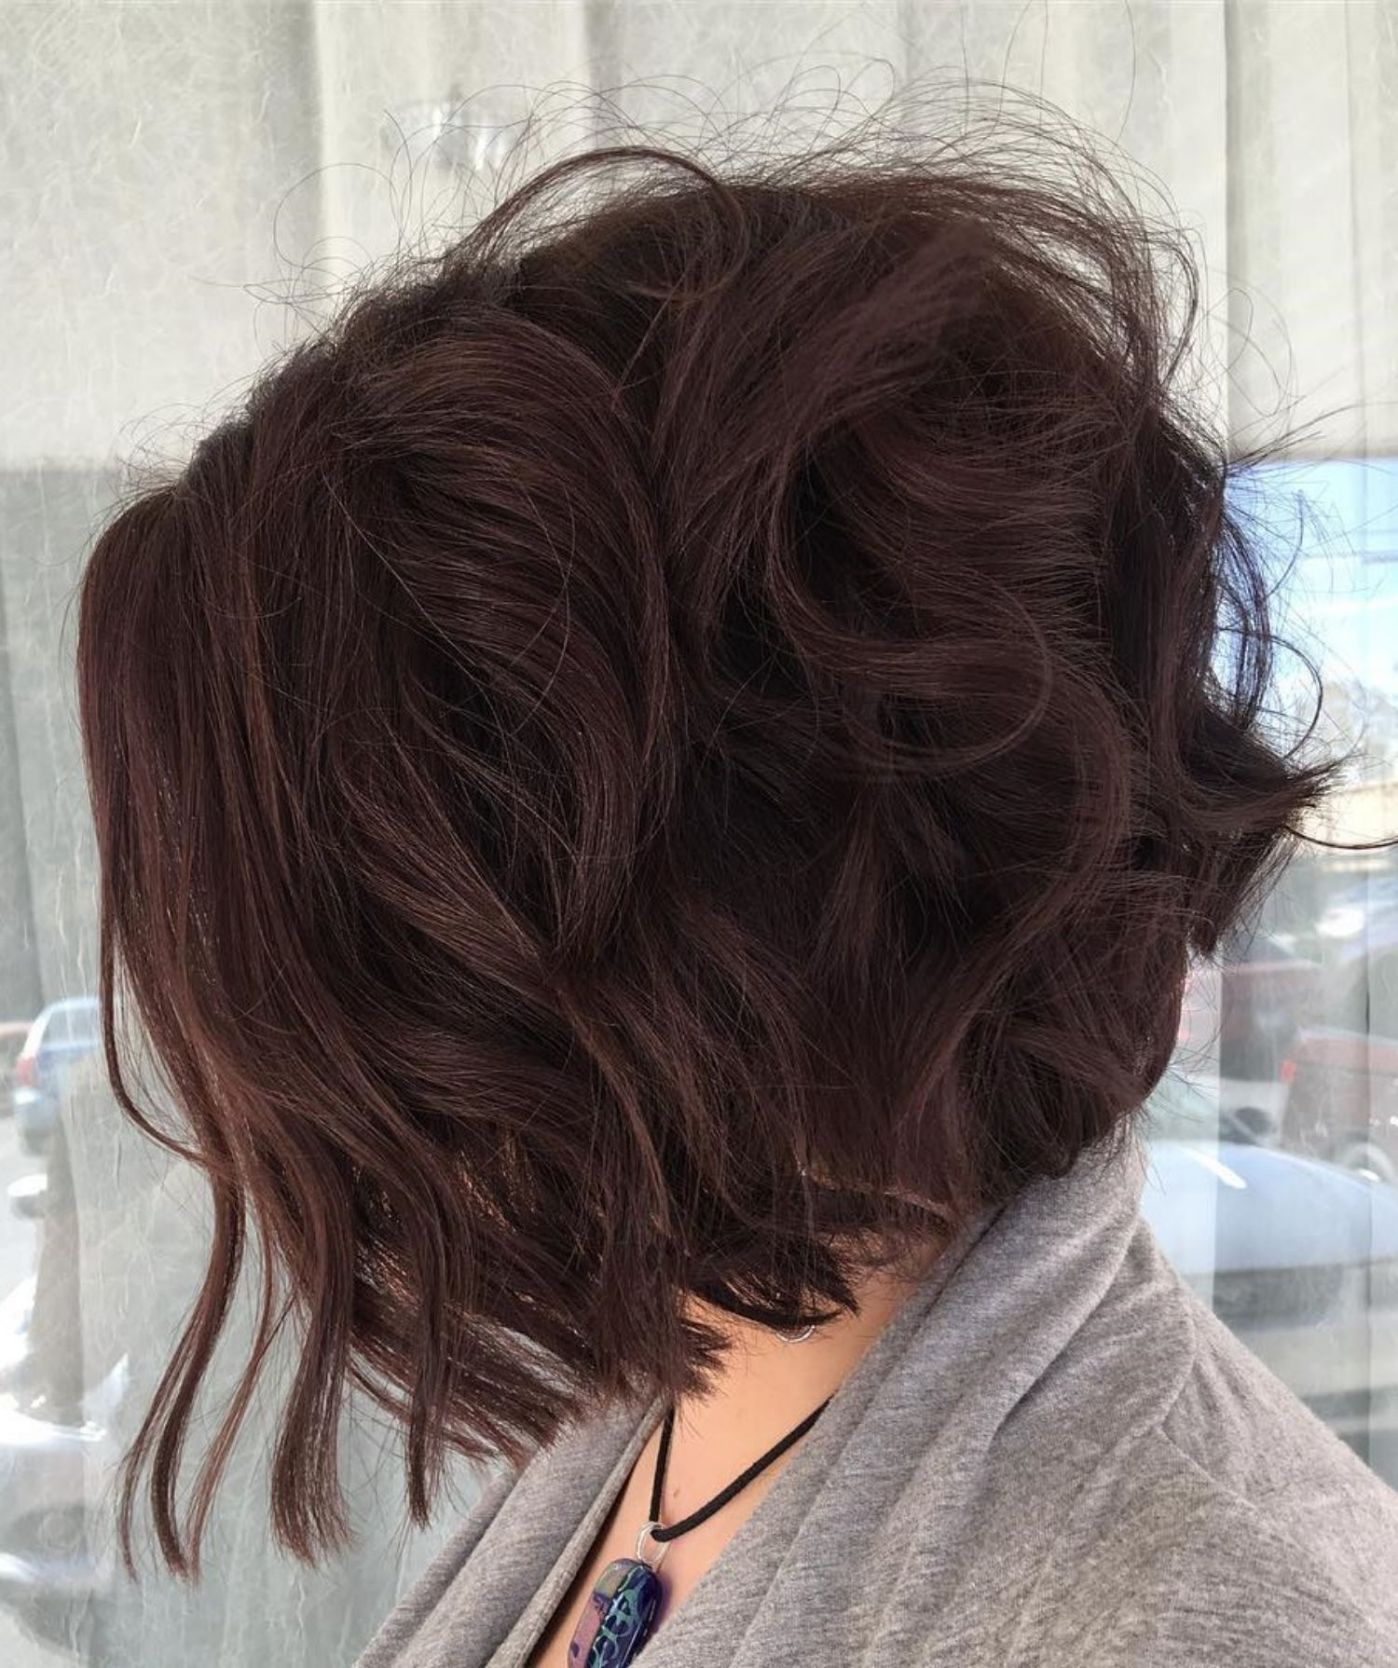 60 most delightful short wavy hairstyles | hair in 2019